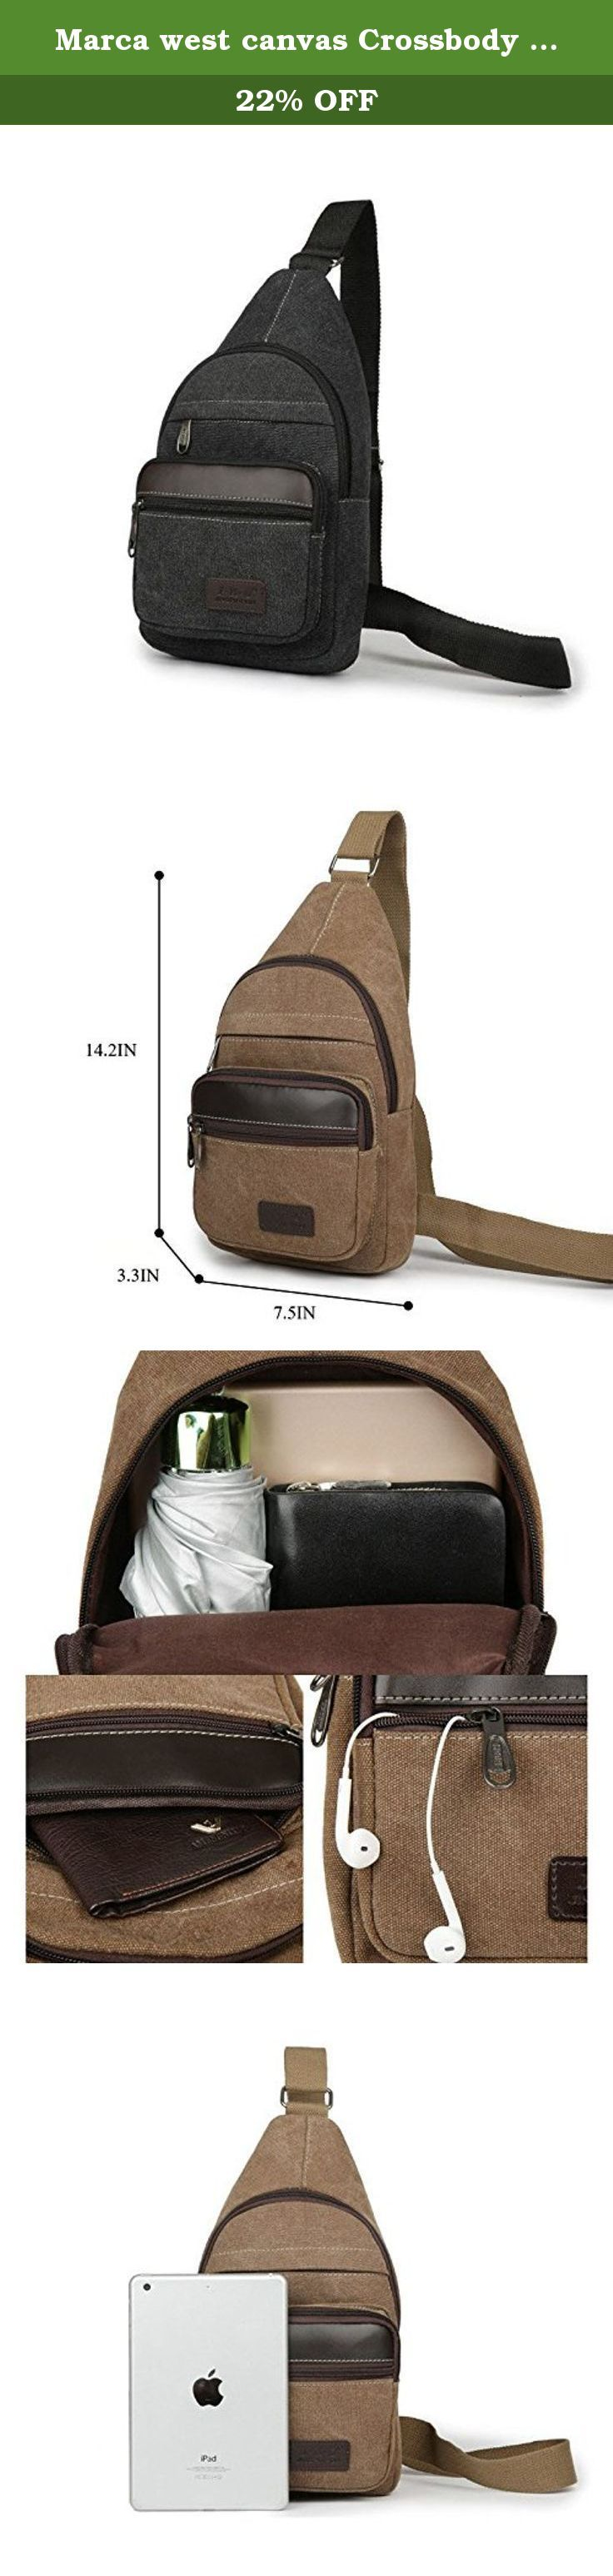 Marca west canvas Crossbody Shoulder Bag Chest Bag Sling Bag Hiking Bicycle Bag. Color:army green,khaki,blue,brown,black. Feedback: Your satisfaction and positive feedback is very important to us. Please leave positive feedback and 5 stars if you are satisfied with our items and services. Service: If you have any problems with our items or services, please feel free to contact us first before you leave negative feedback. We will do our best to solve any problem and provide you with the…